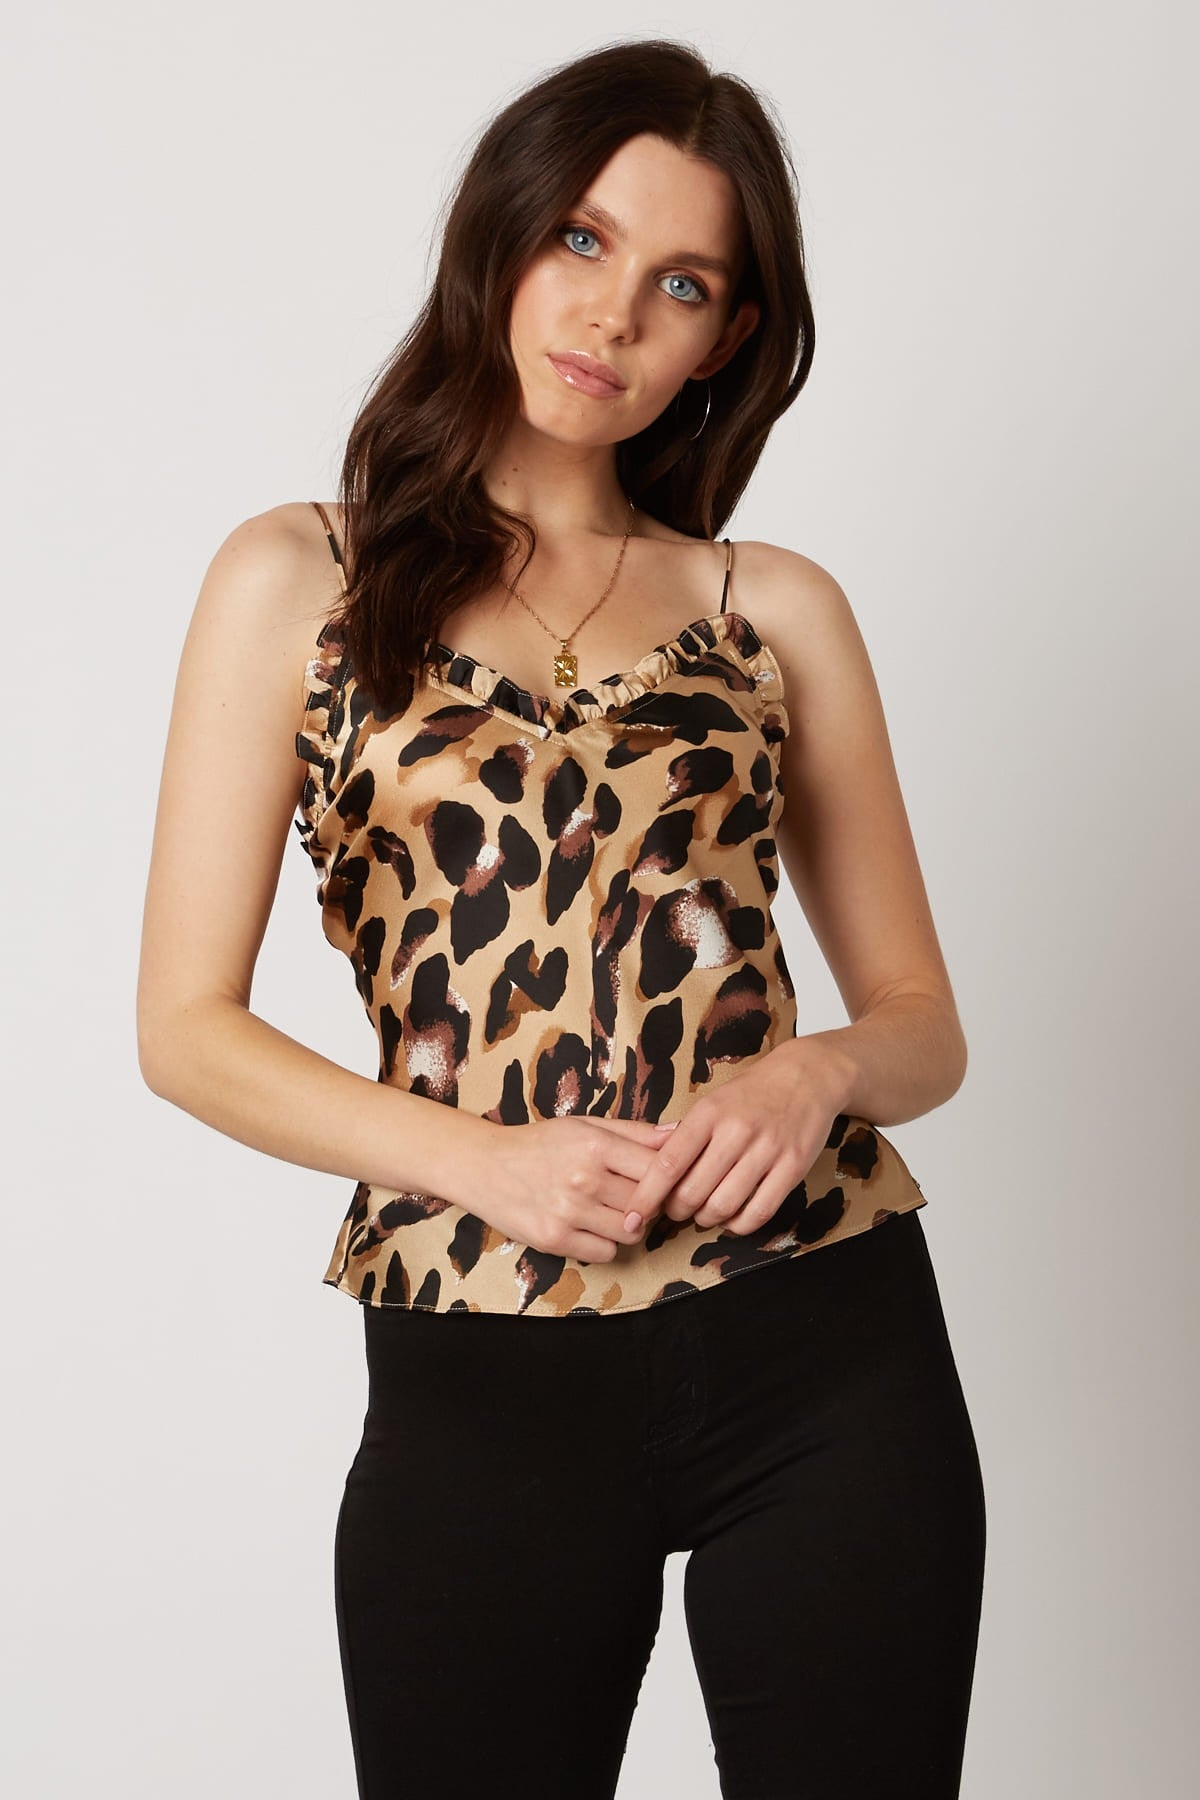 Crazy Cat Lady Cami Top | Necessary Clothing